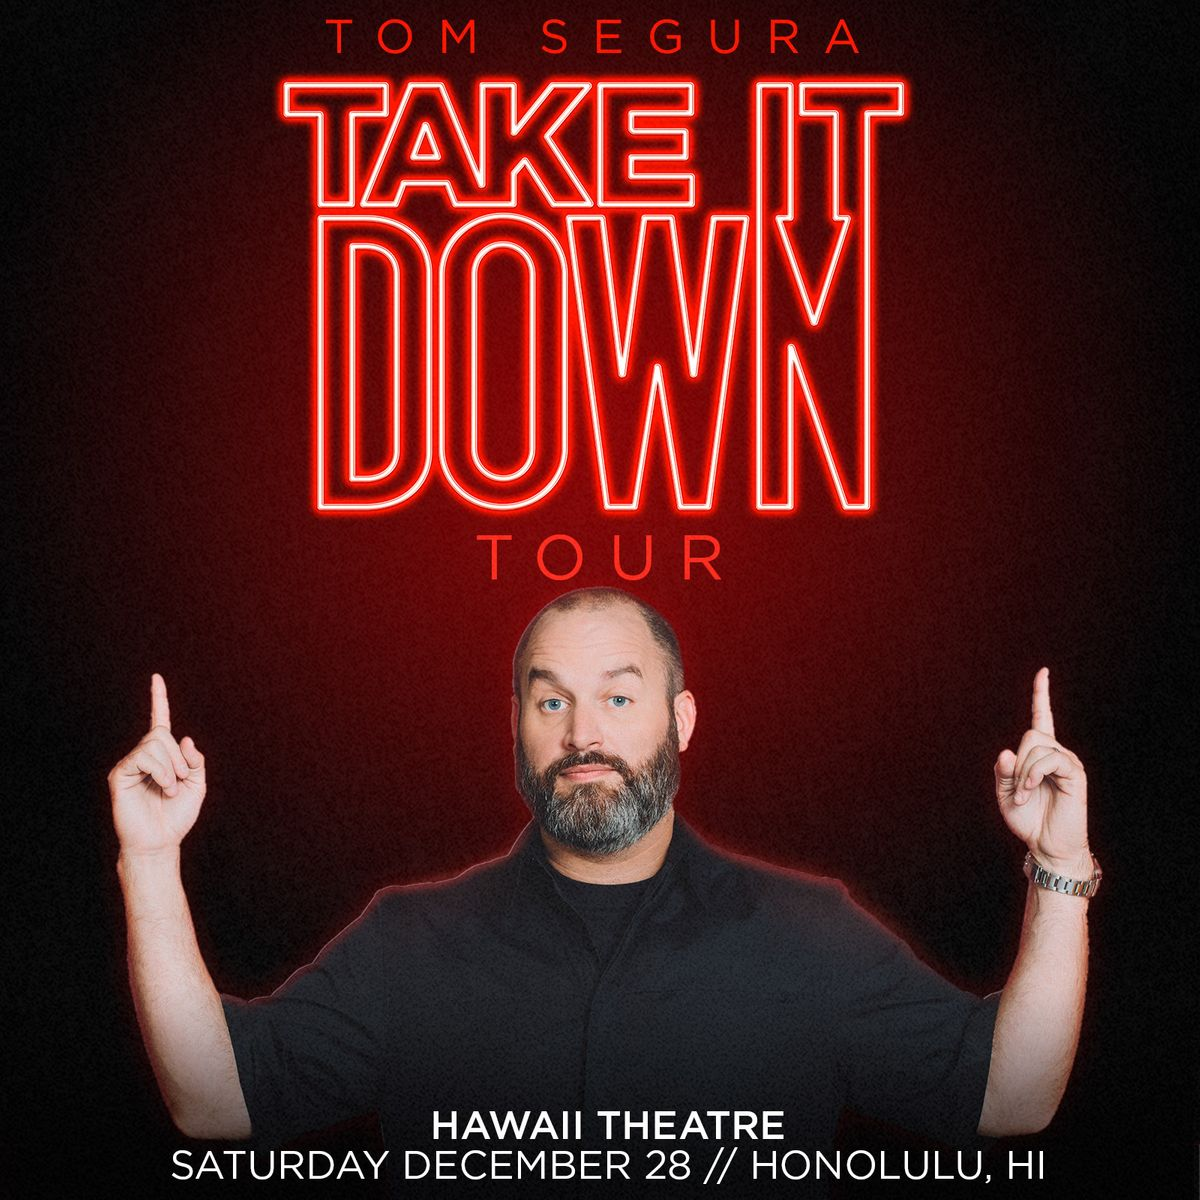 Tom_Segura_Honolulu_1600x1600.jpg